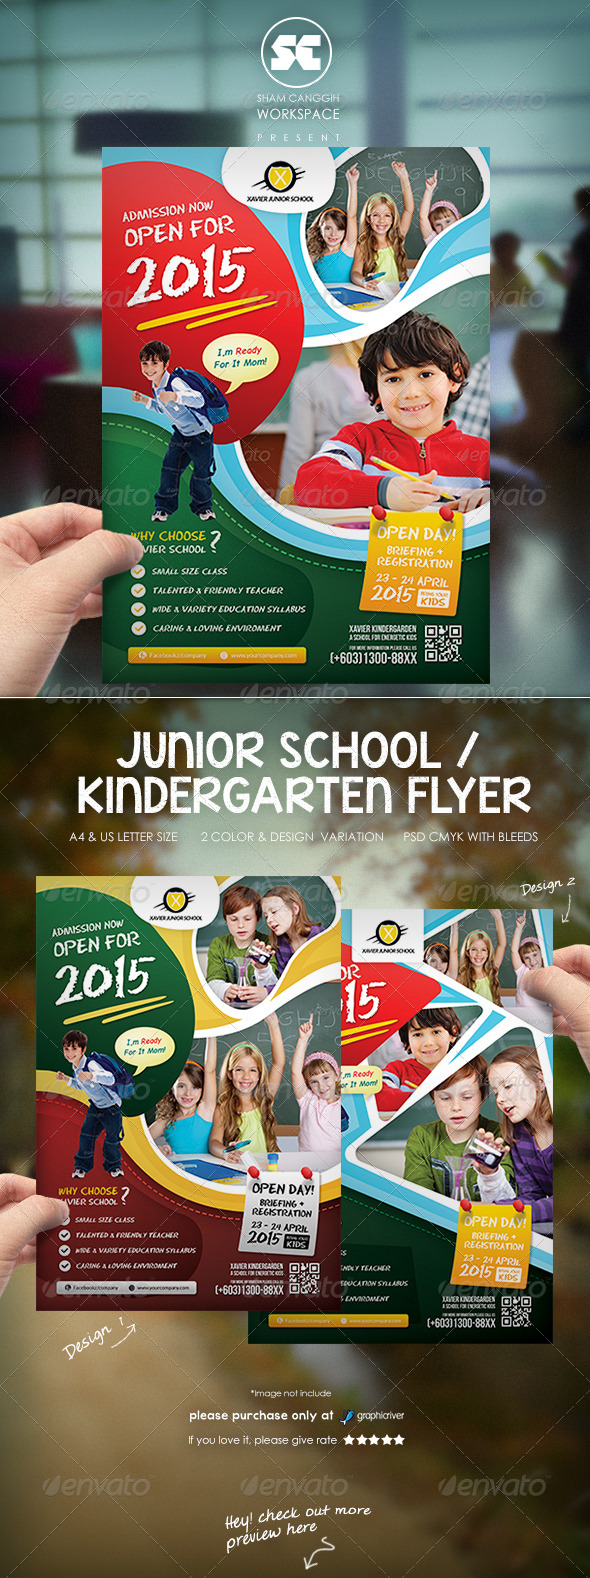 GraphicRiver Kindergarten Junior School Flyer 7524968